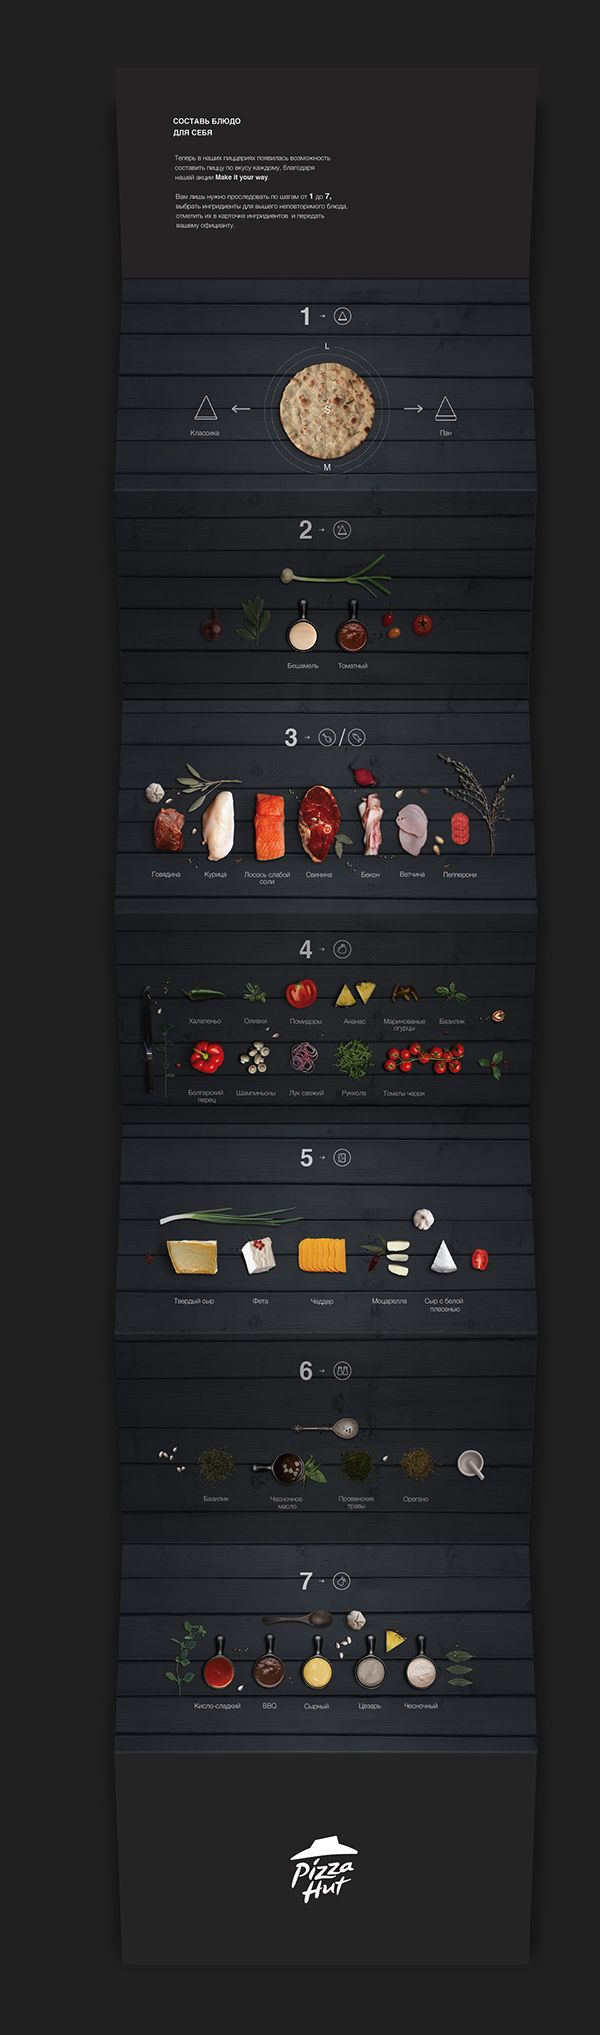 Food menu design on Behance